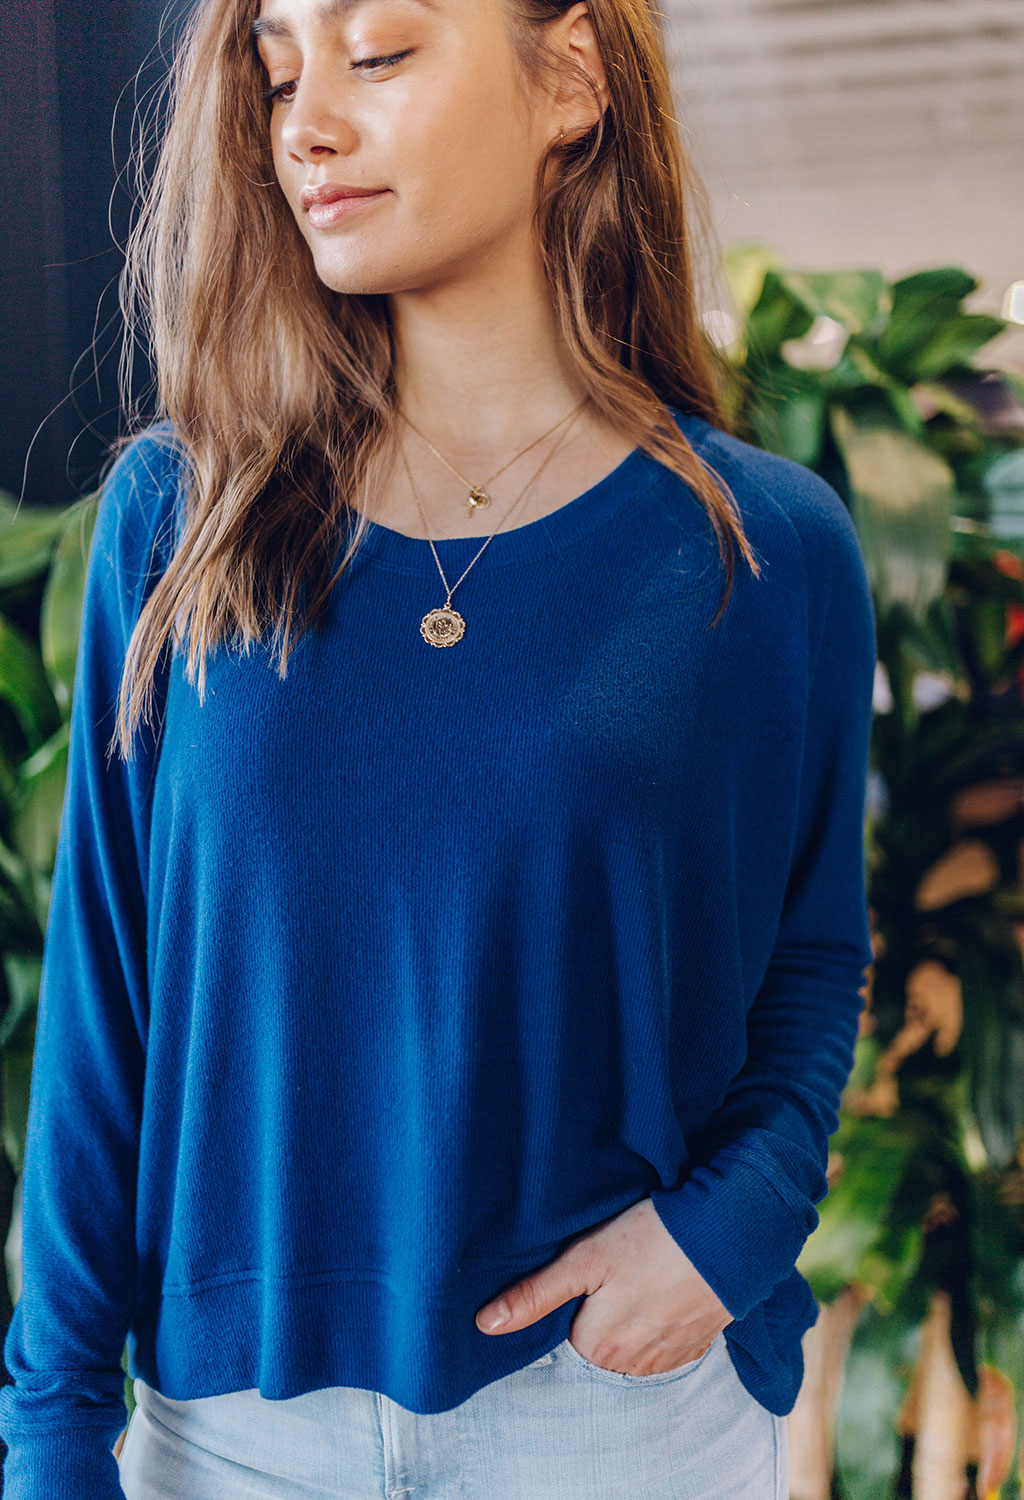 Melinda Cobalt Blue Dolman Top - RUST & Co.